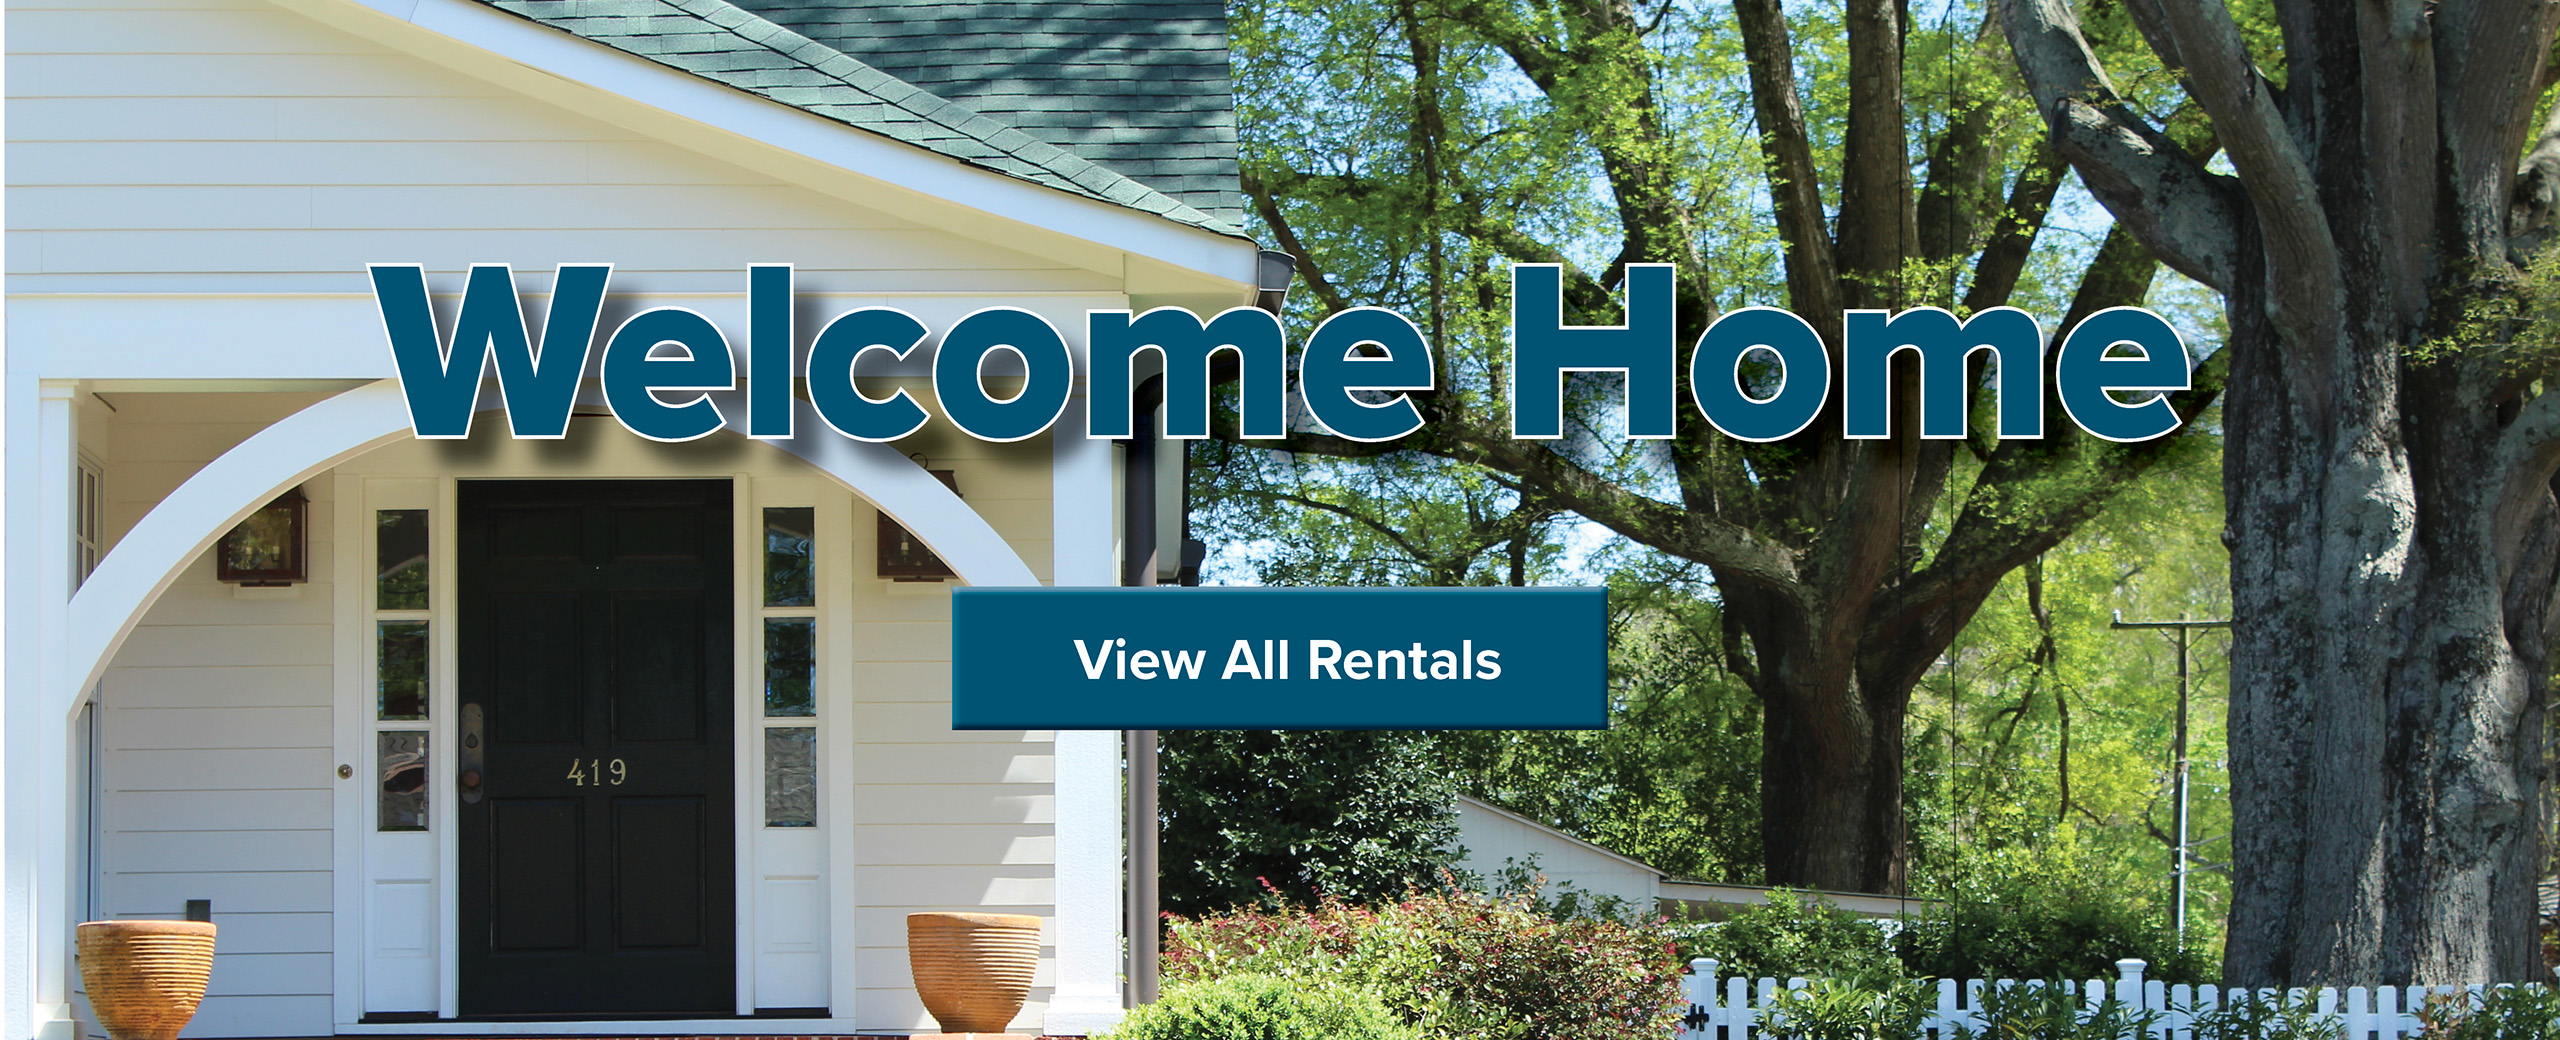 Welcome Home Message and View All Rentals